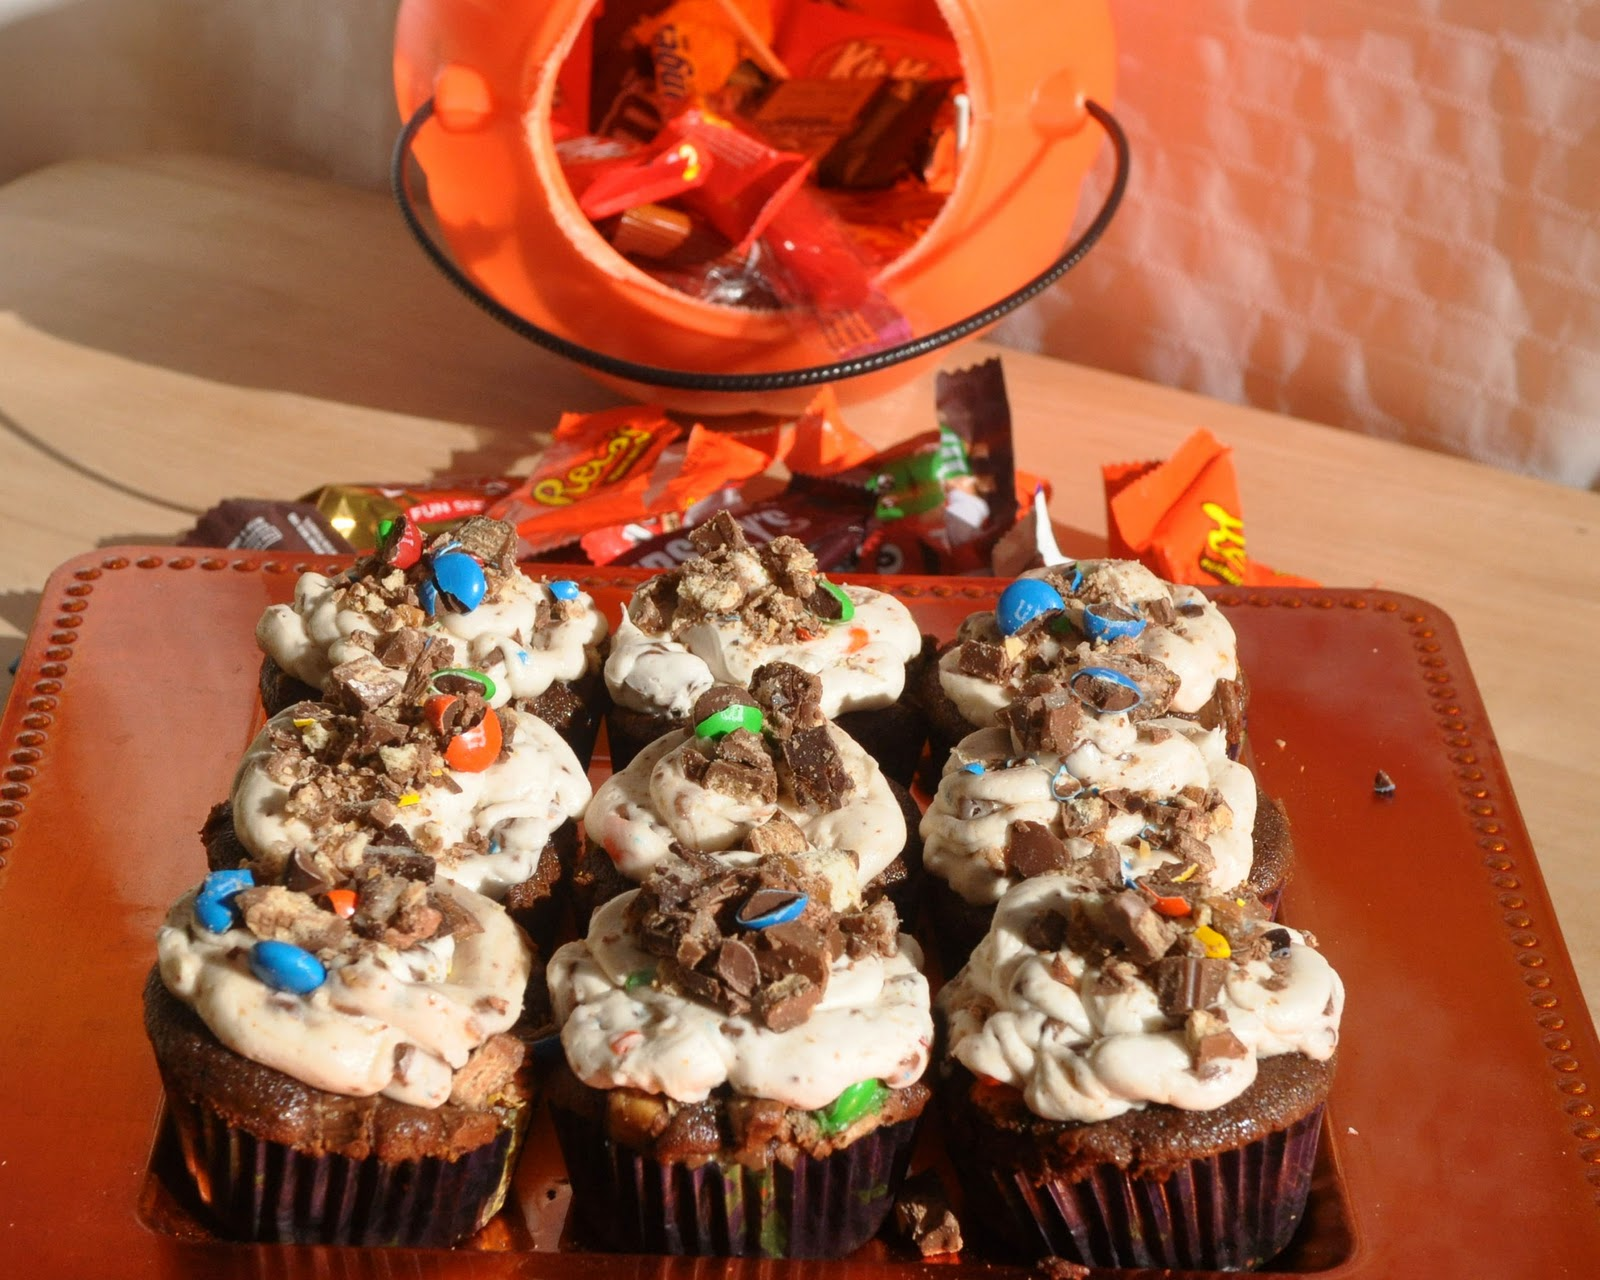 Beki Cooks Cake Blog Leftover Halloween Candy Cupcakes - Cupcakes for thanksgiving decorating ideas